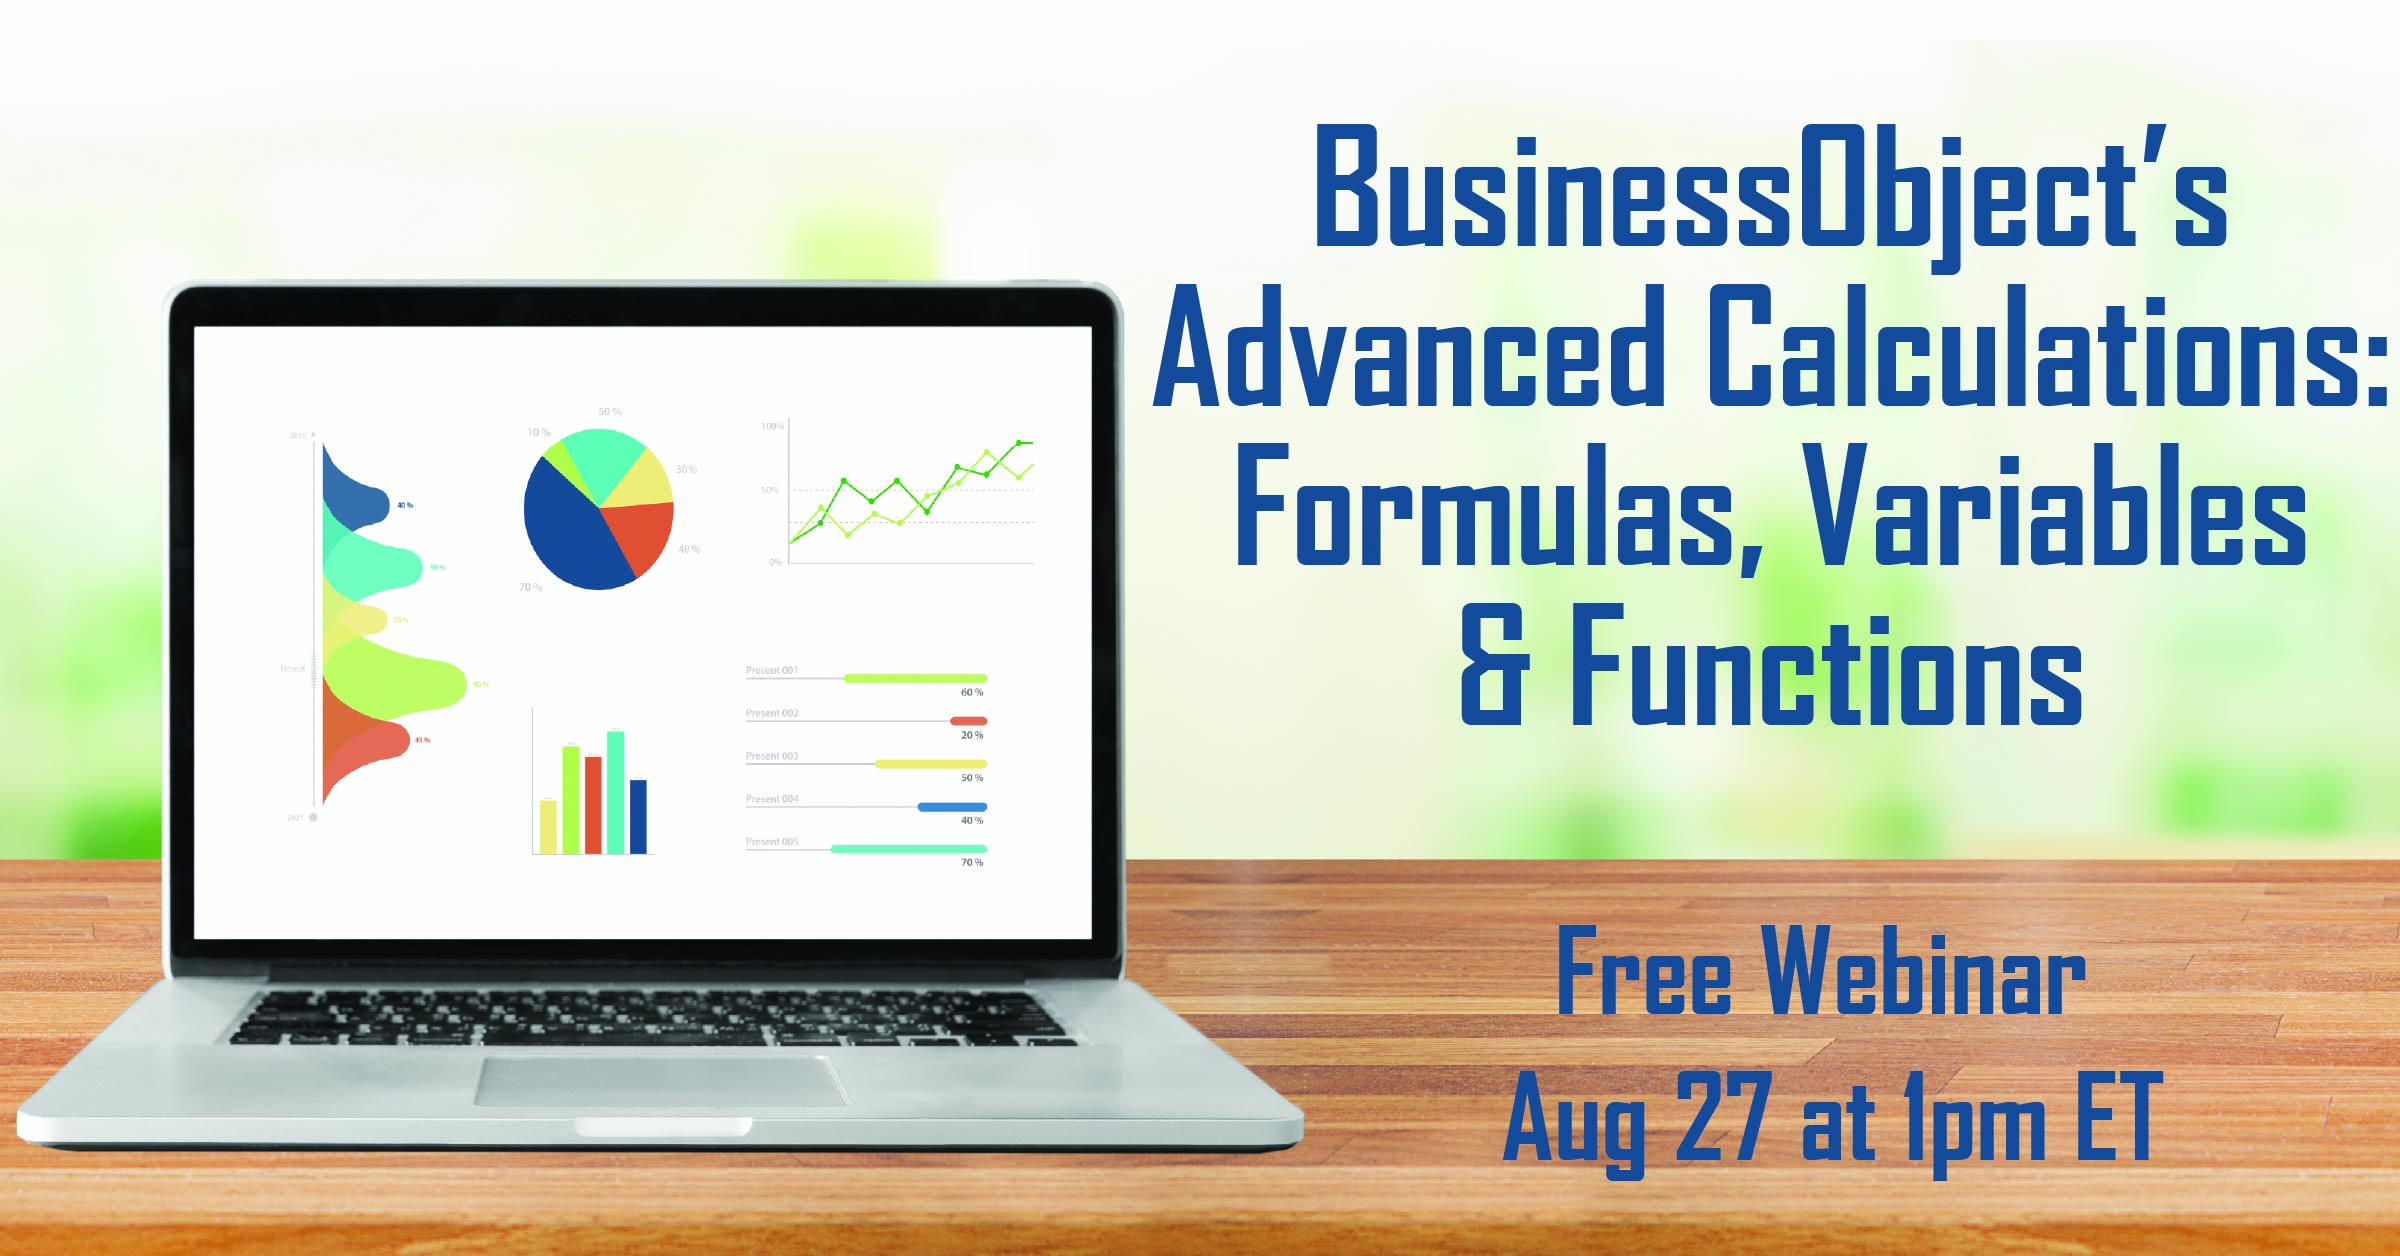 BO's Advanced Calculations: Formulas, Variables & Functions